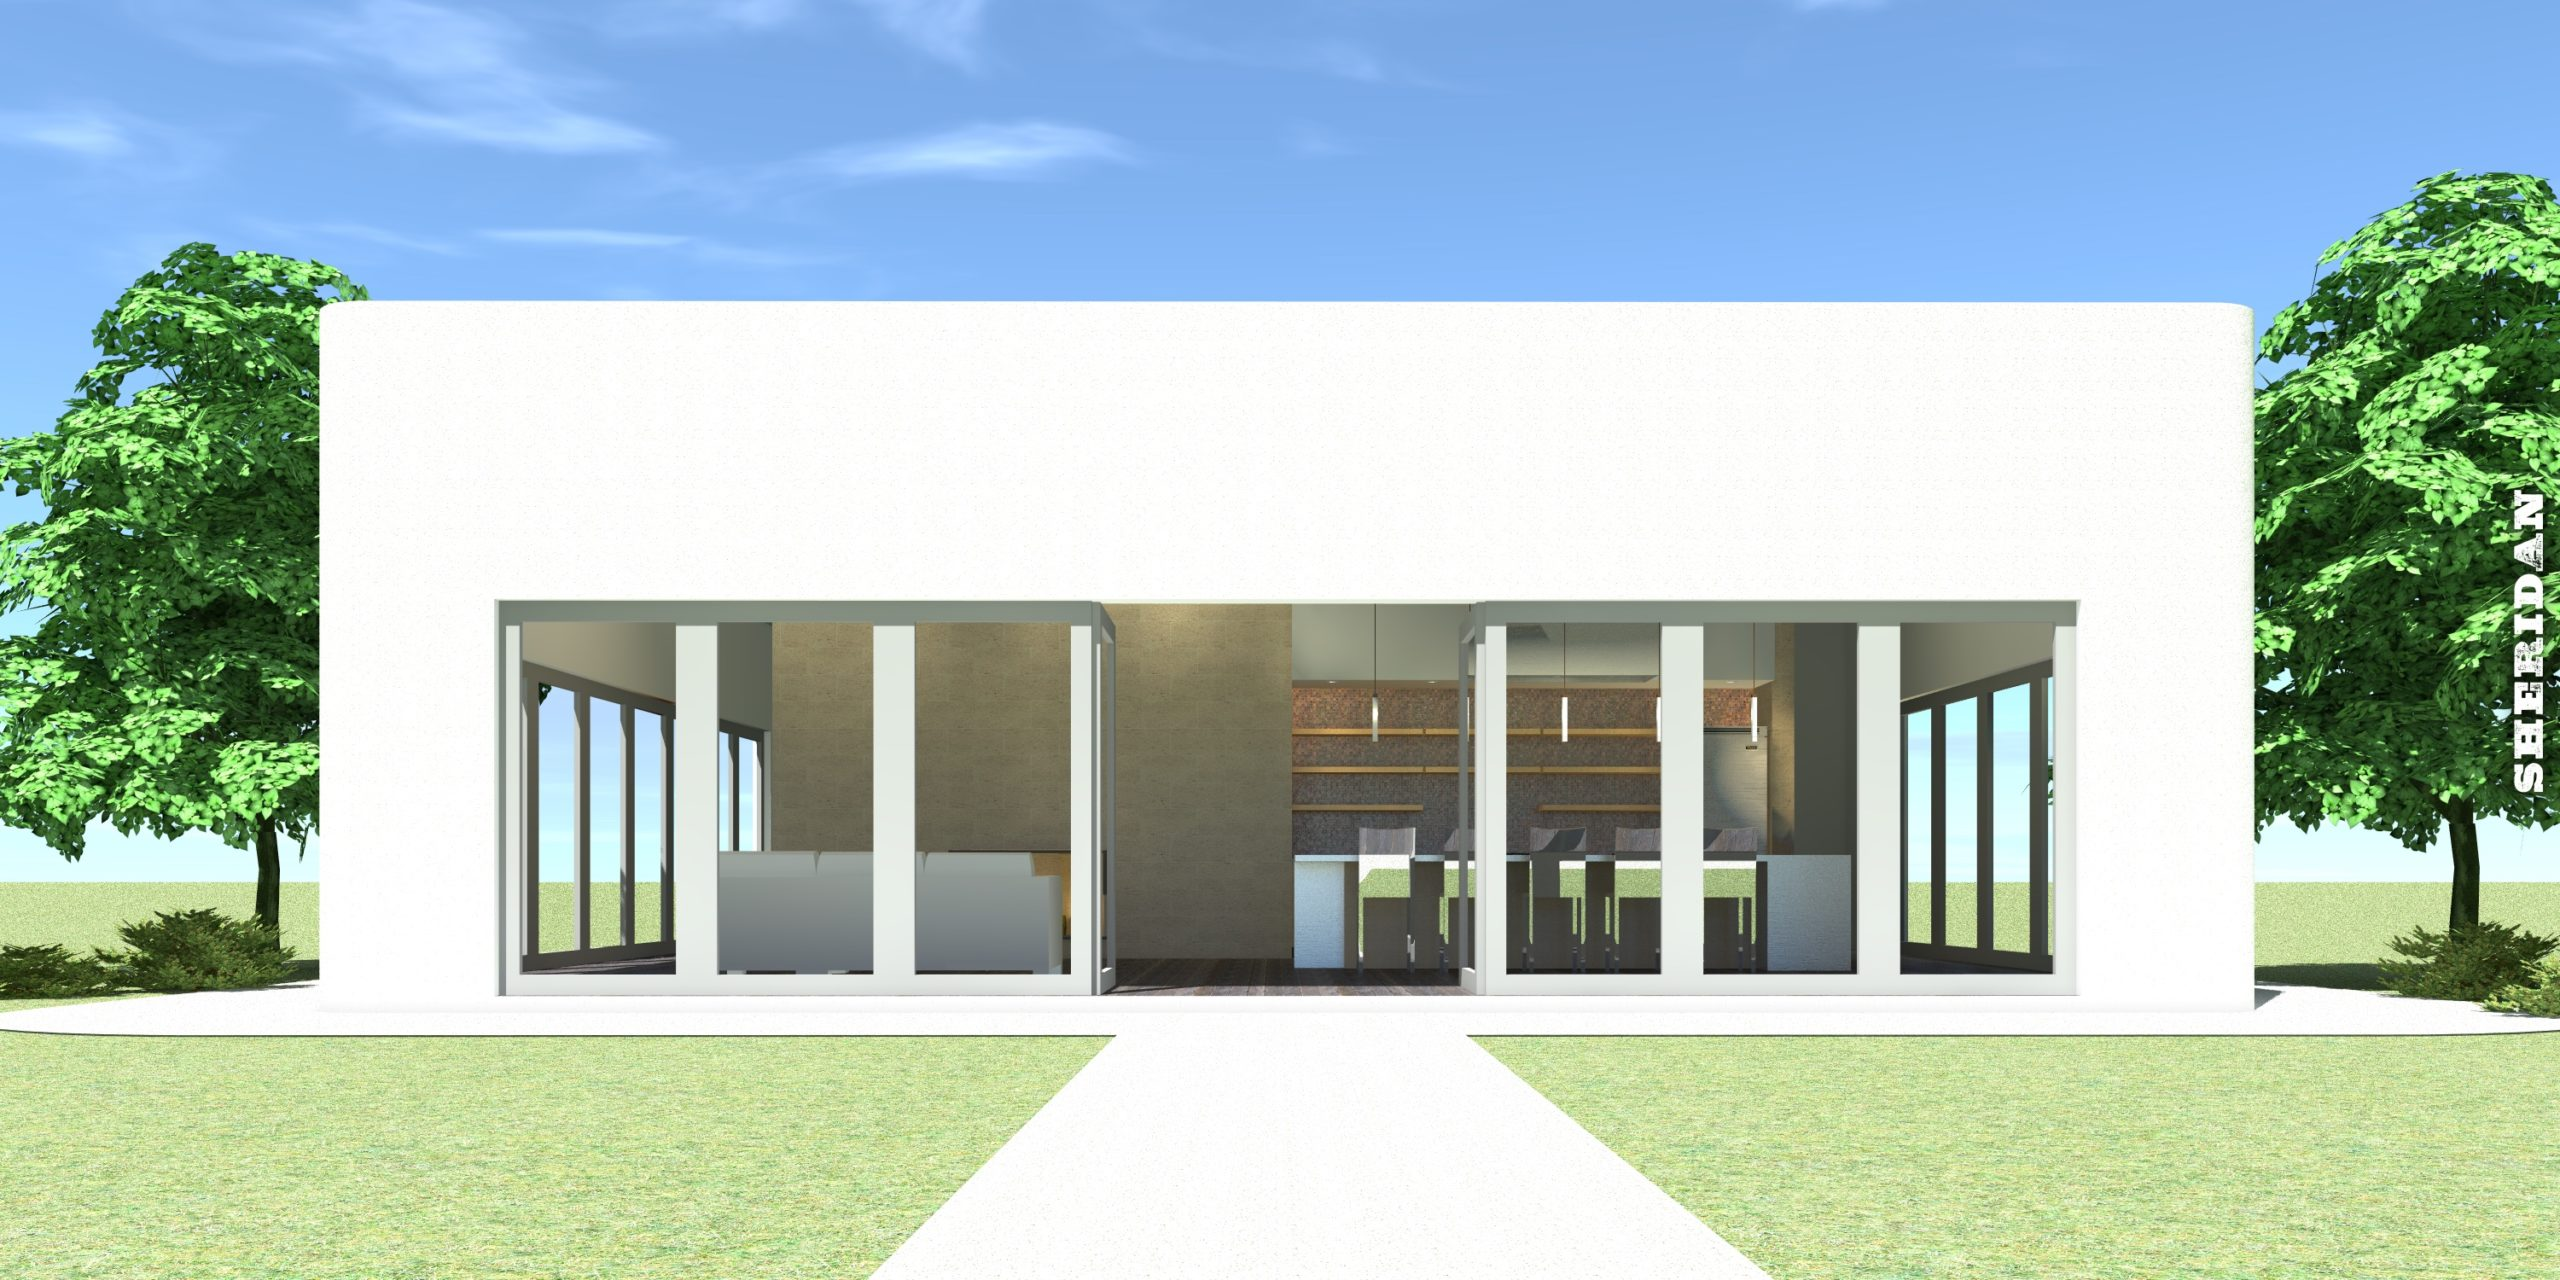 Square Modern Loft Home. 1600 Square Feet. Sheridan by Tyree House Plans.